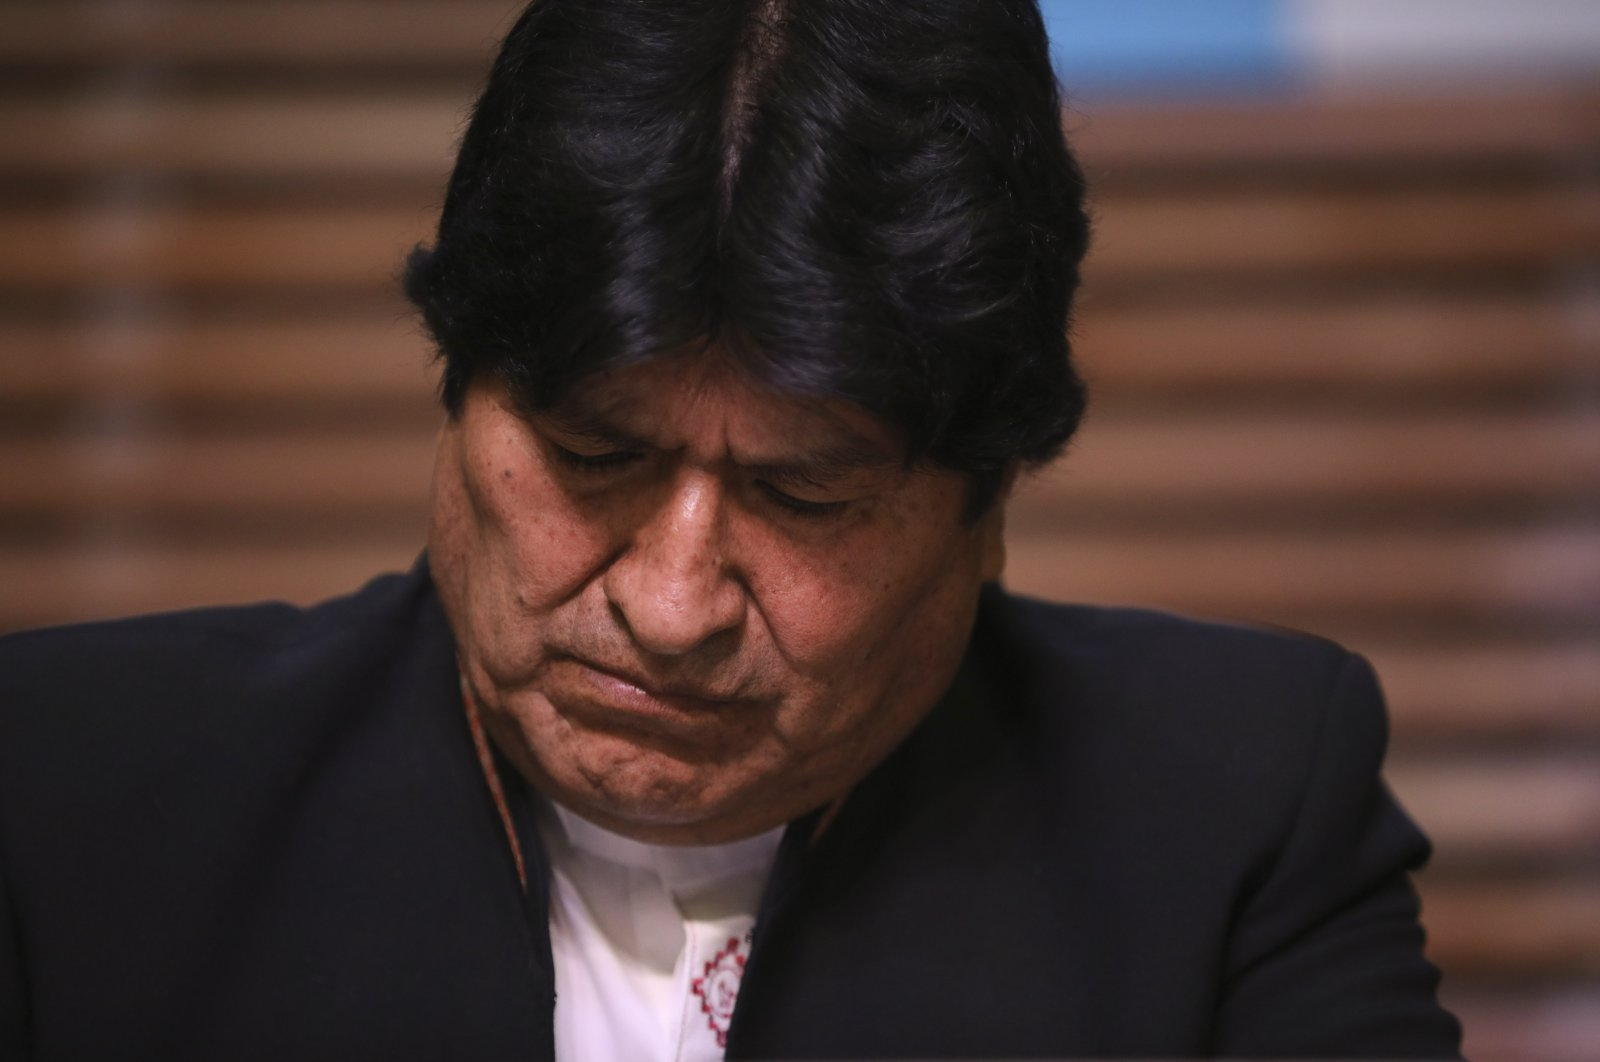 Bolivia's former President Evo Morales gives a press conference regarding the rejection of his plan to run for senator in Buenos Aires, Argentina, where he is living, Feb. 21, 2020. (AP Photo)